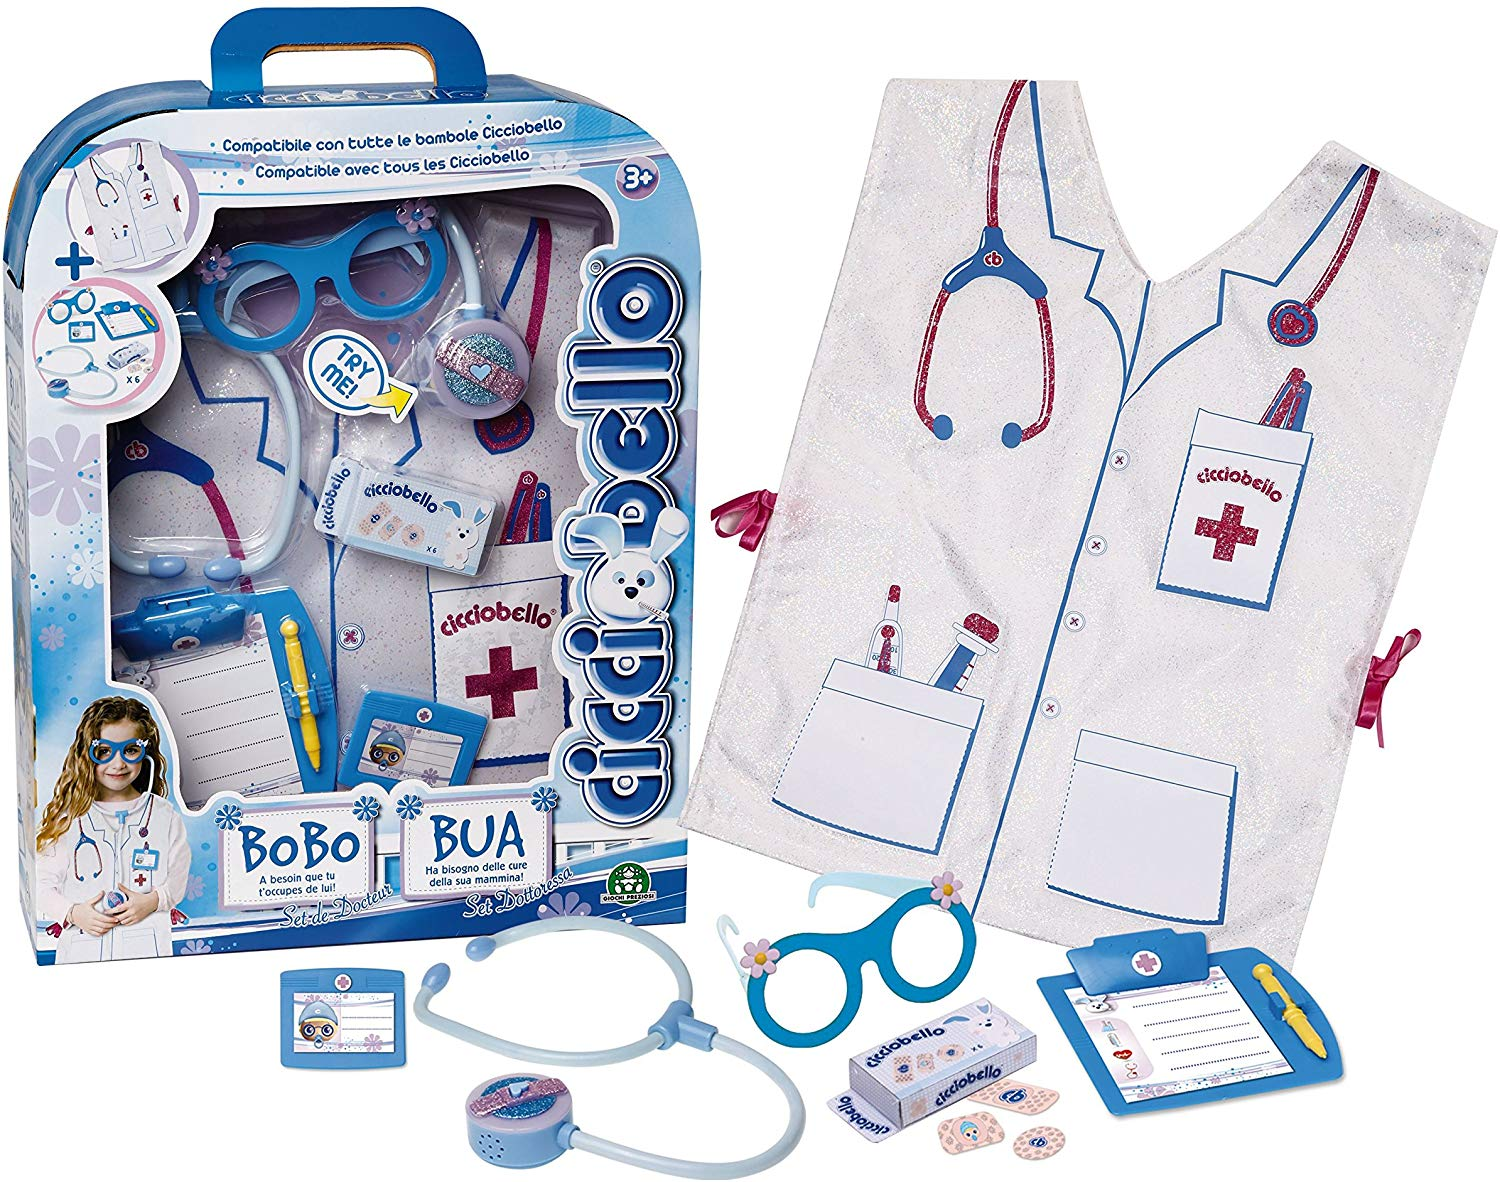 "El kit del médico le permitirá a su hijo ponerse en el lugar de un médico con su bebé. ""Width ="" 390 ""height ="" 307 ""srcset ="" https://www.bebe-reborn.top/wp- content / uploads / 2019/10 / kit-medecin-enfant.jpg 1500w, https: // www .bebe-reborn.top / wp-content / uploads / 2019/10 / kit-medecin-enfant-300x236.jpg 300w, https://www.bebe-reborn.top/wp-content/uploads/2019/10/ kit-medecin-enfant-768x605.jpg 768w, https://www.bebe-reborn.top/wp-content/uploads /2019/10/kit-medecin-enfant-1024x807.jpg 1024w, https: // www. bebe-reborn.top/wp-content/uploads/2019/10/kit-medecin-enfant-765x602.jpg 765w, https: //www.bebe-reborn.top/wp-content/uploads/2019/10/kit -medecin-enfant-234x184.jpg 234w ""tamaños ="" (ancho máximo: 390px) 100vw, 390px"